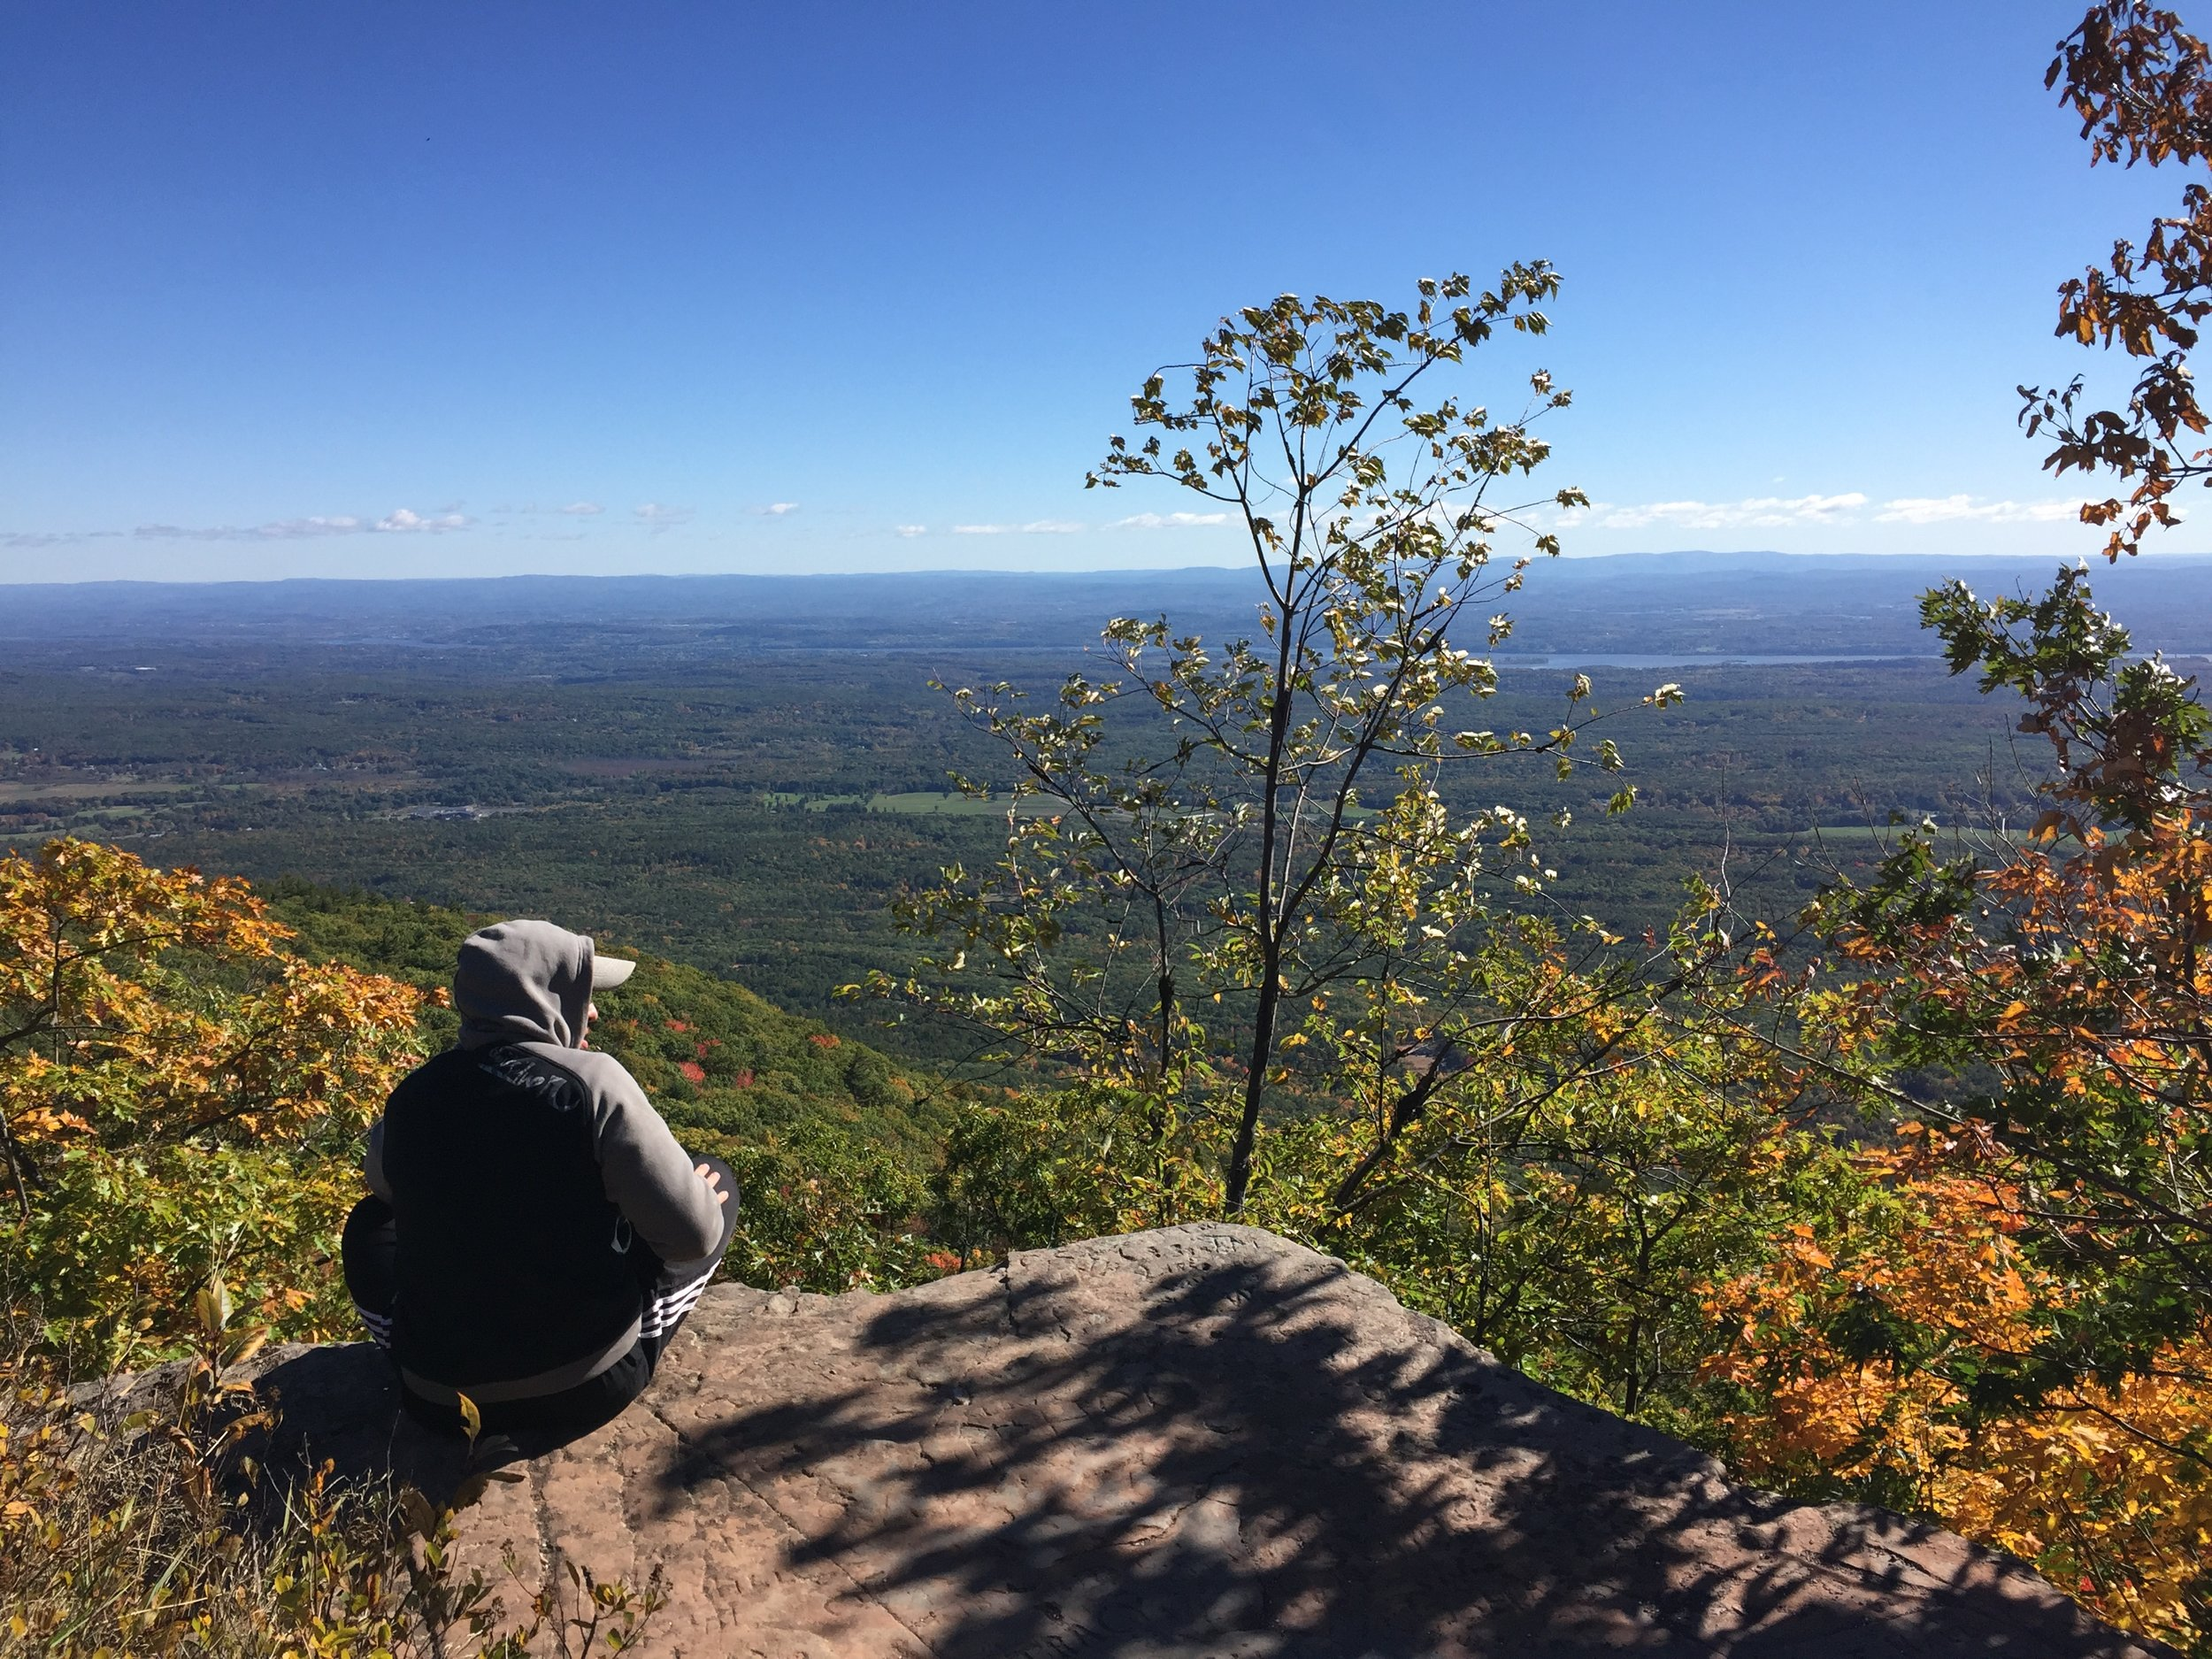 Top of the Catskill Mountain House. On a clear day, you can see across 4 states though not sure how you will know which state is which.